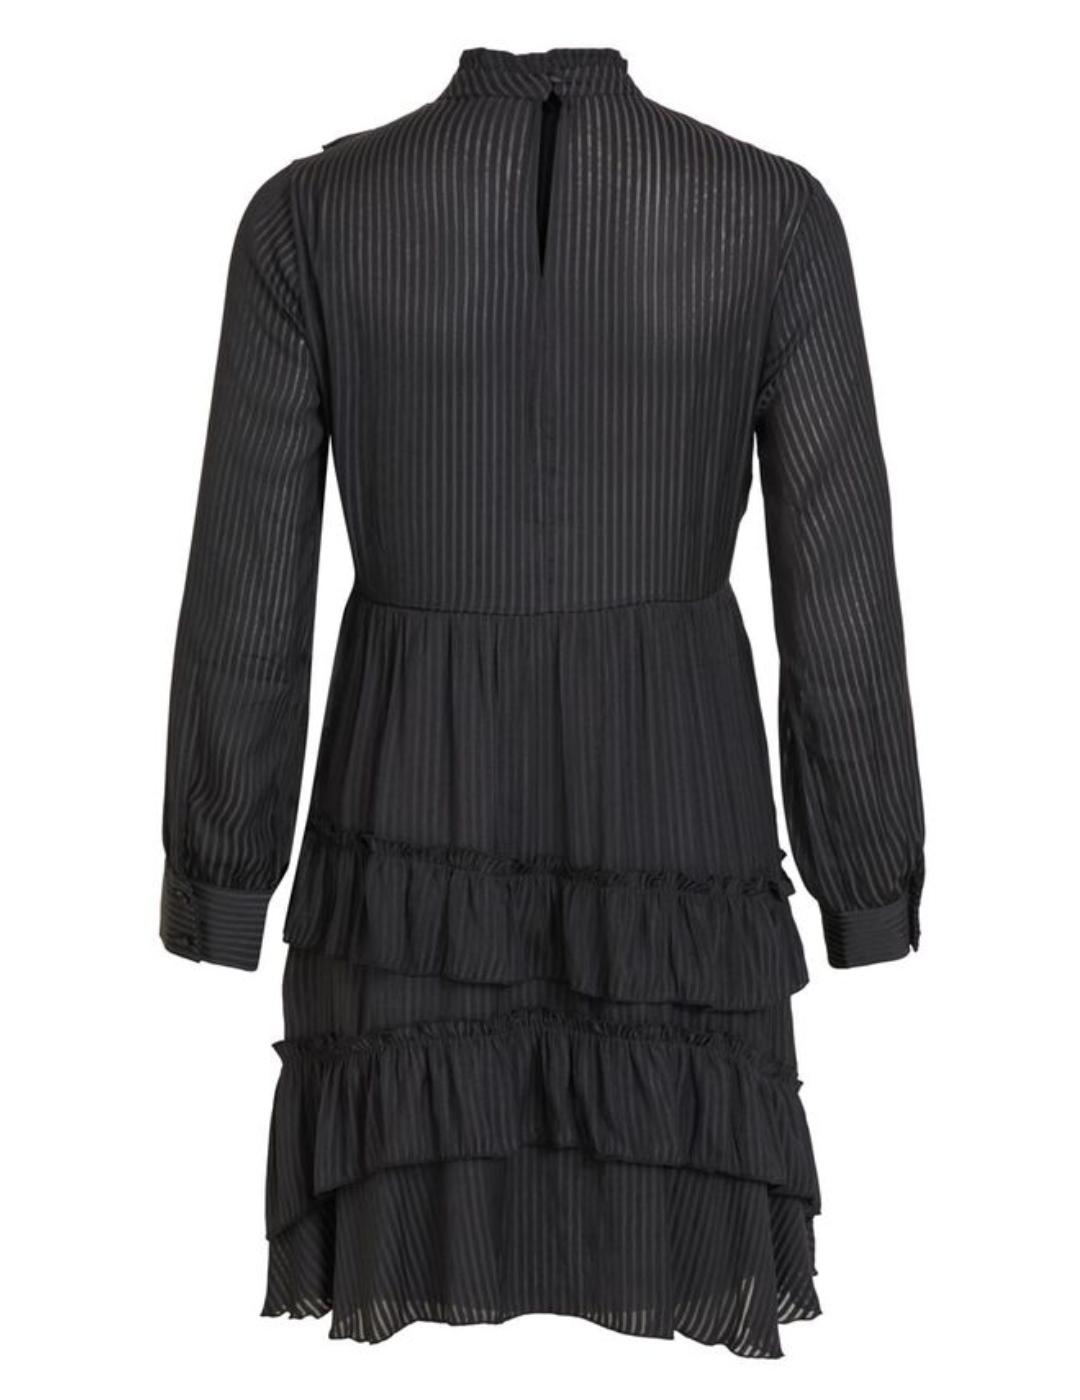 VIANILLA L/S MIDI DRESS BLACK-X